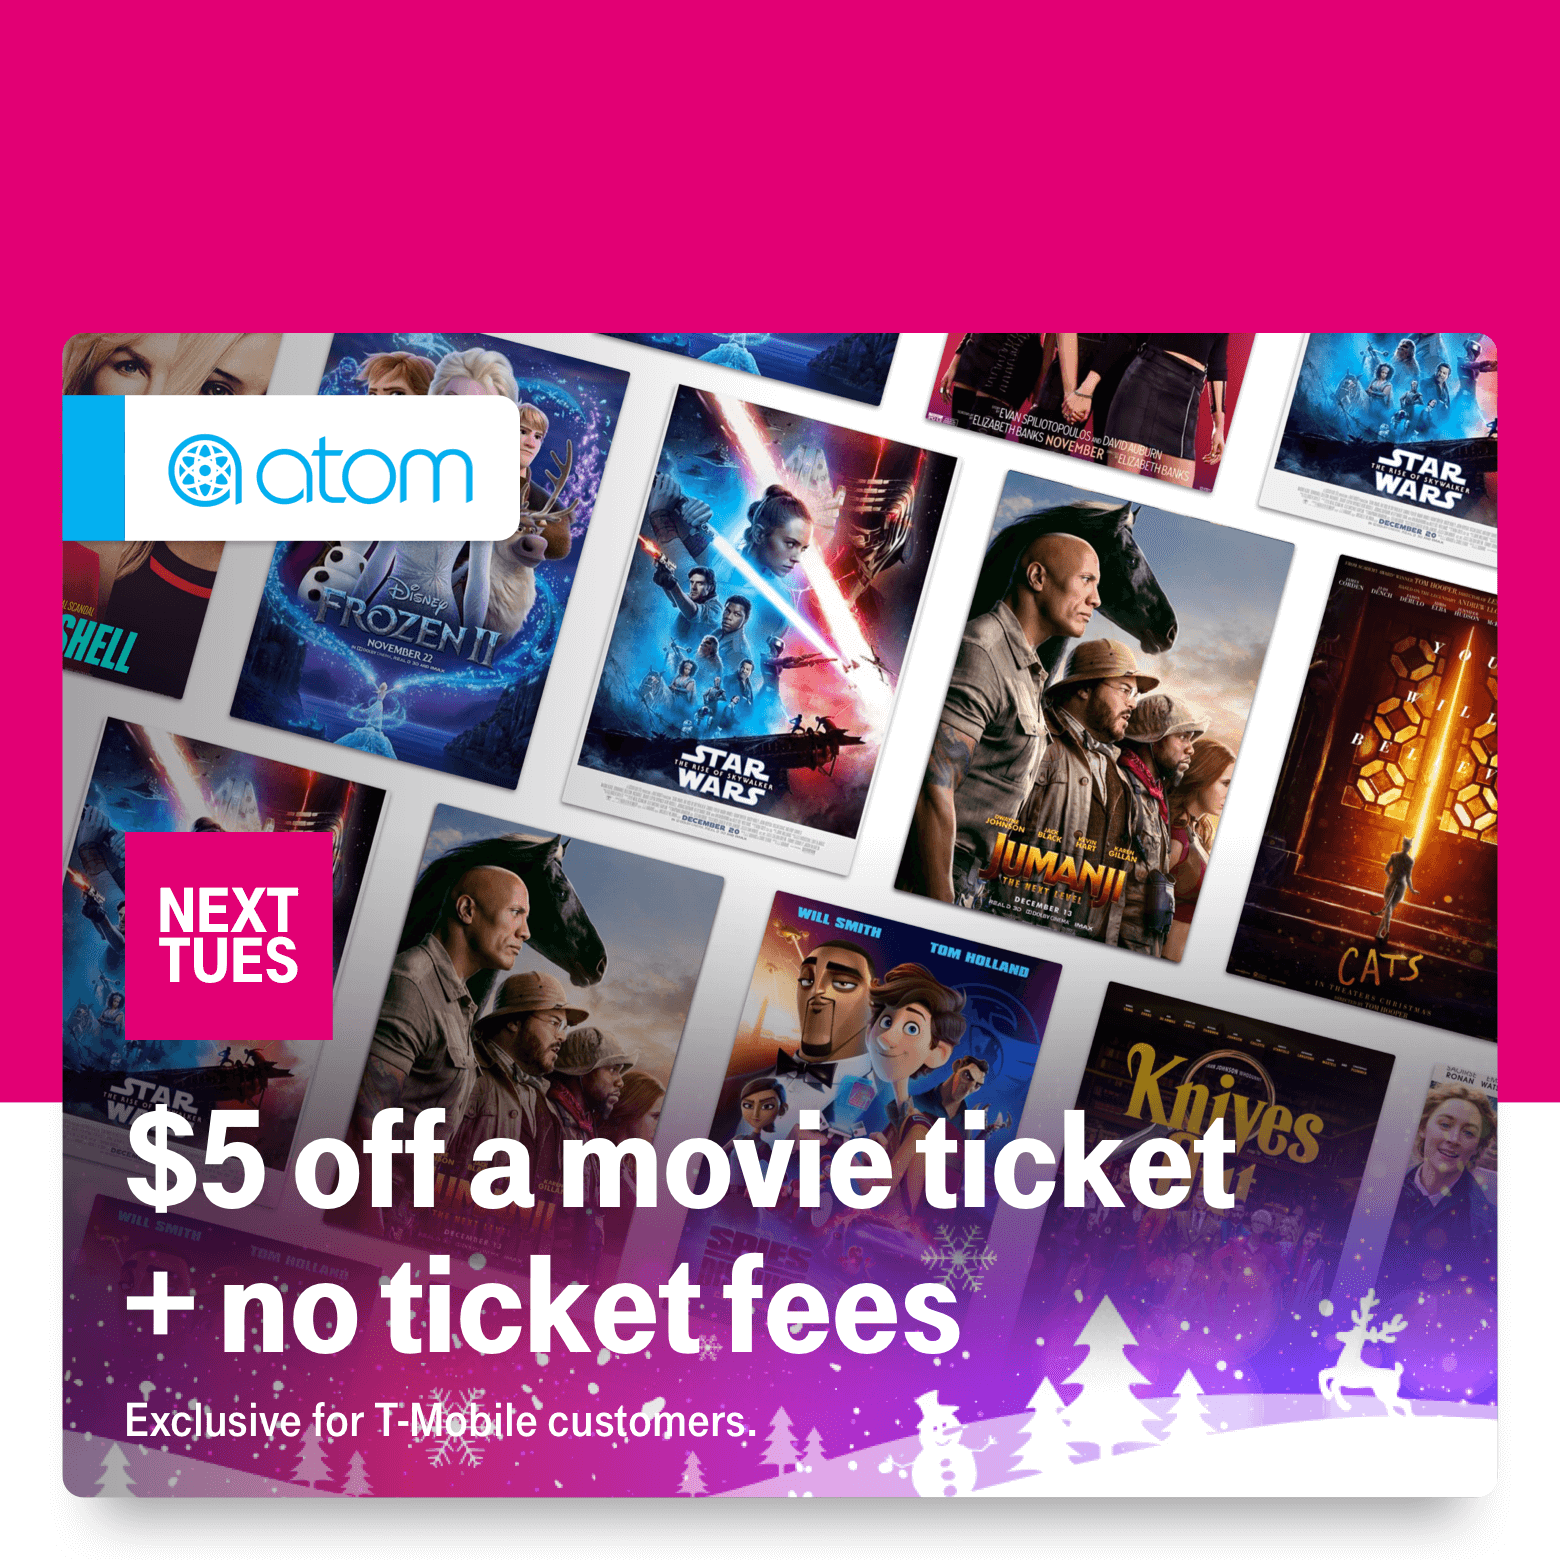 Atom. Next Tuesday. $5 off a movie ticket + no ticket fees. Exclusive for T-Mobile customers.